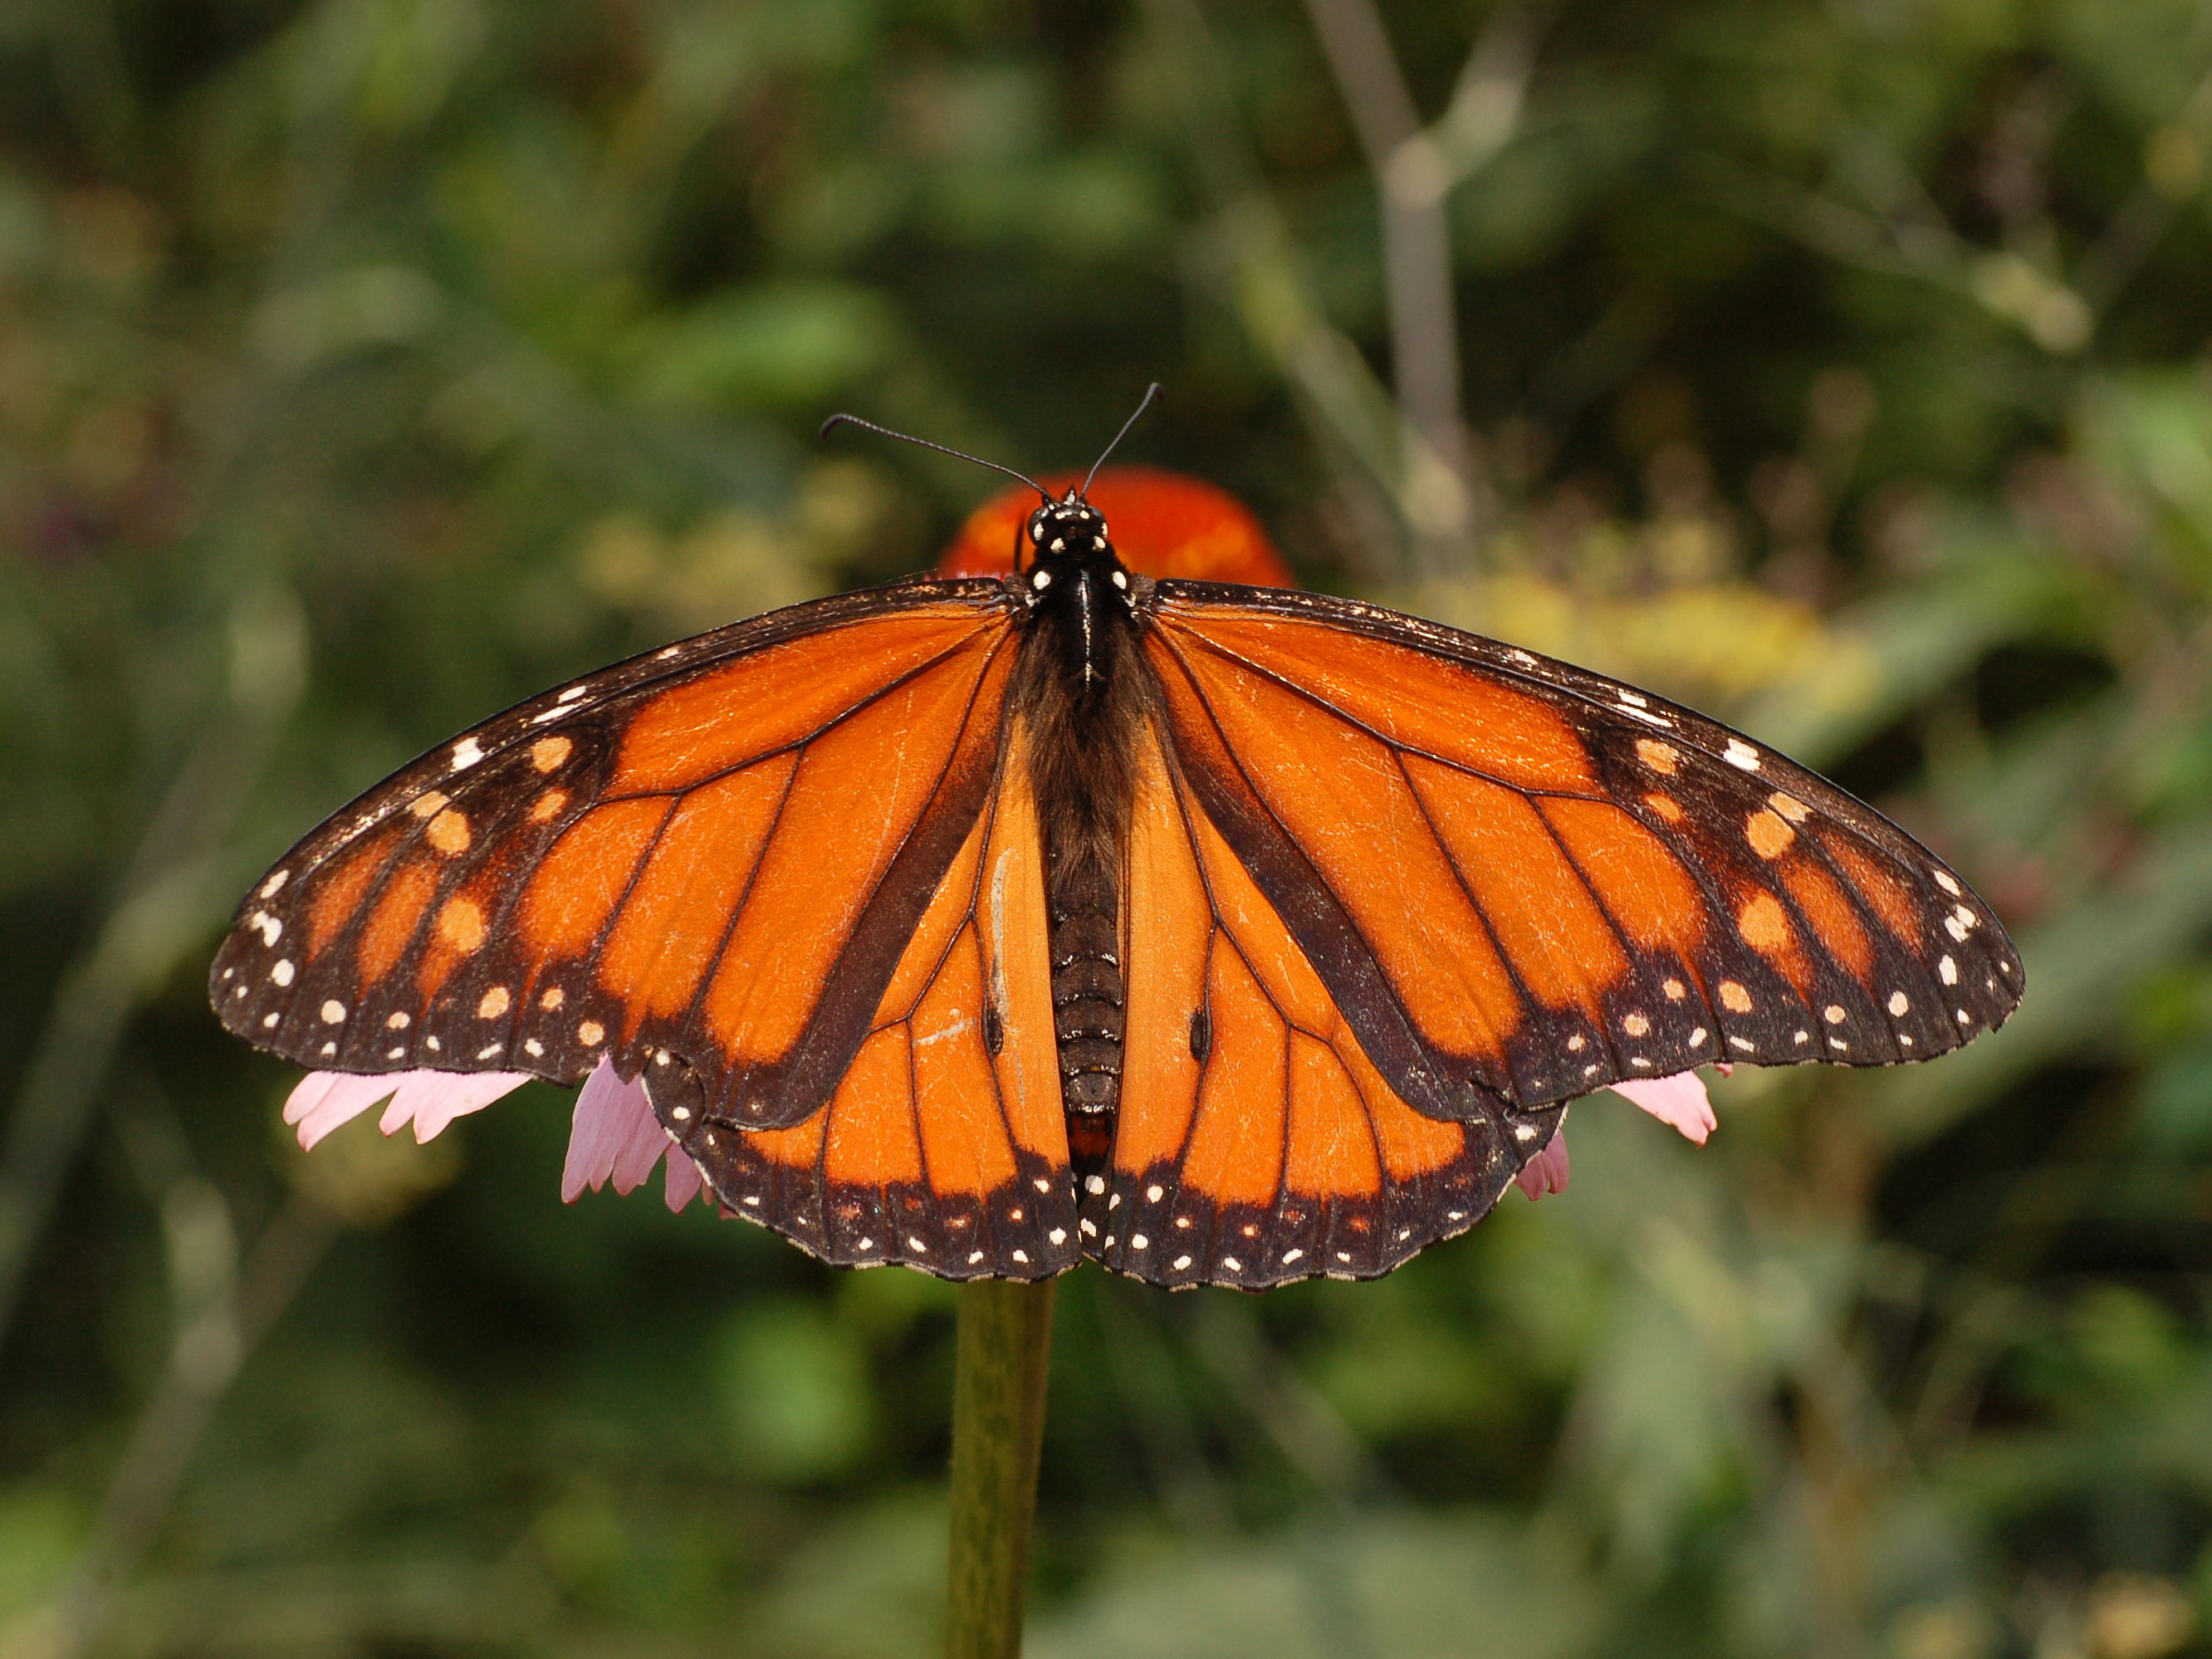 Welcome to the Pismo Beach Monarch Butterfly Grove